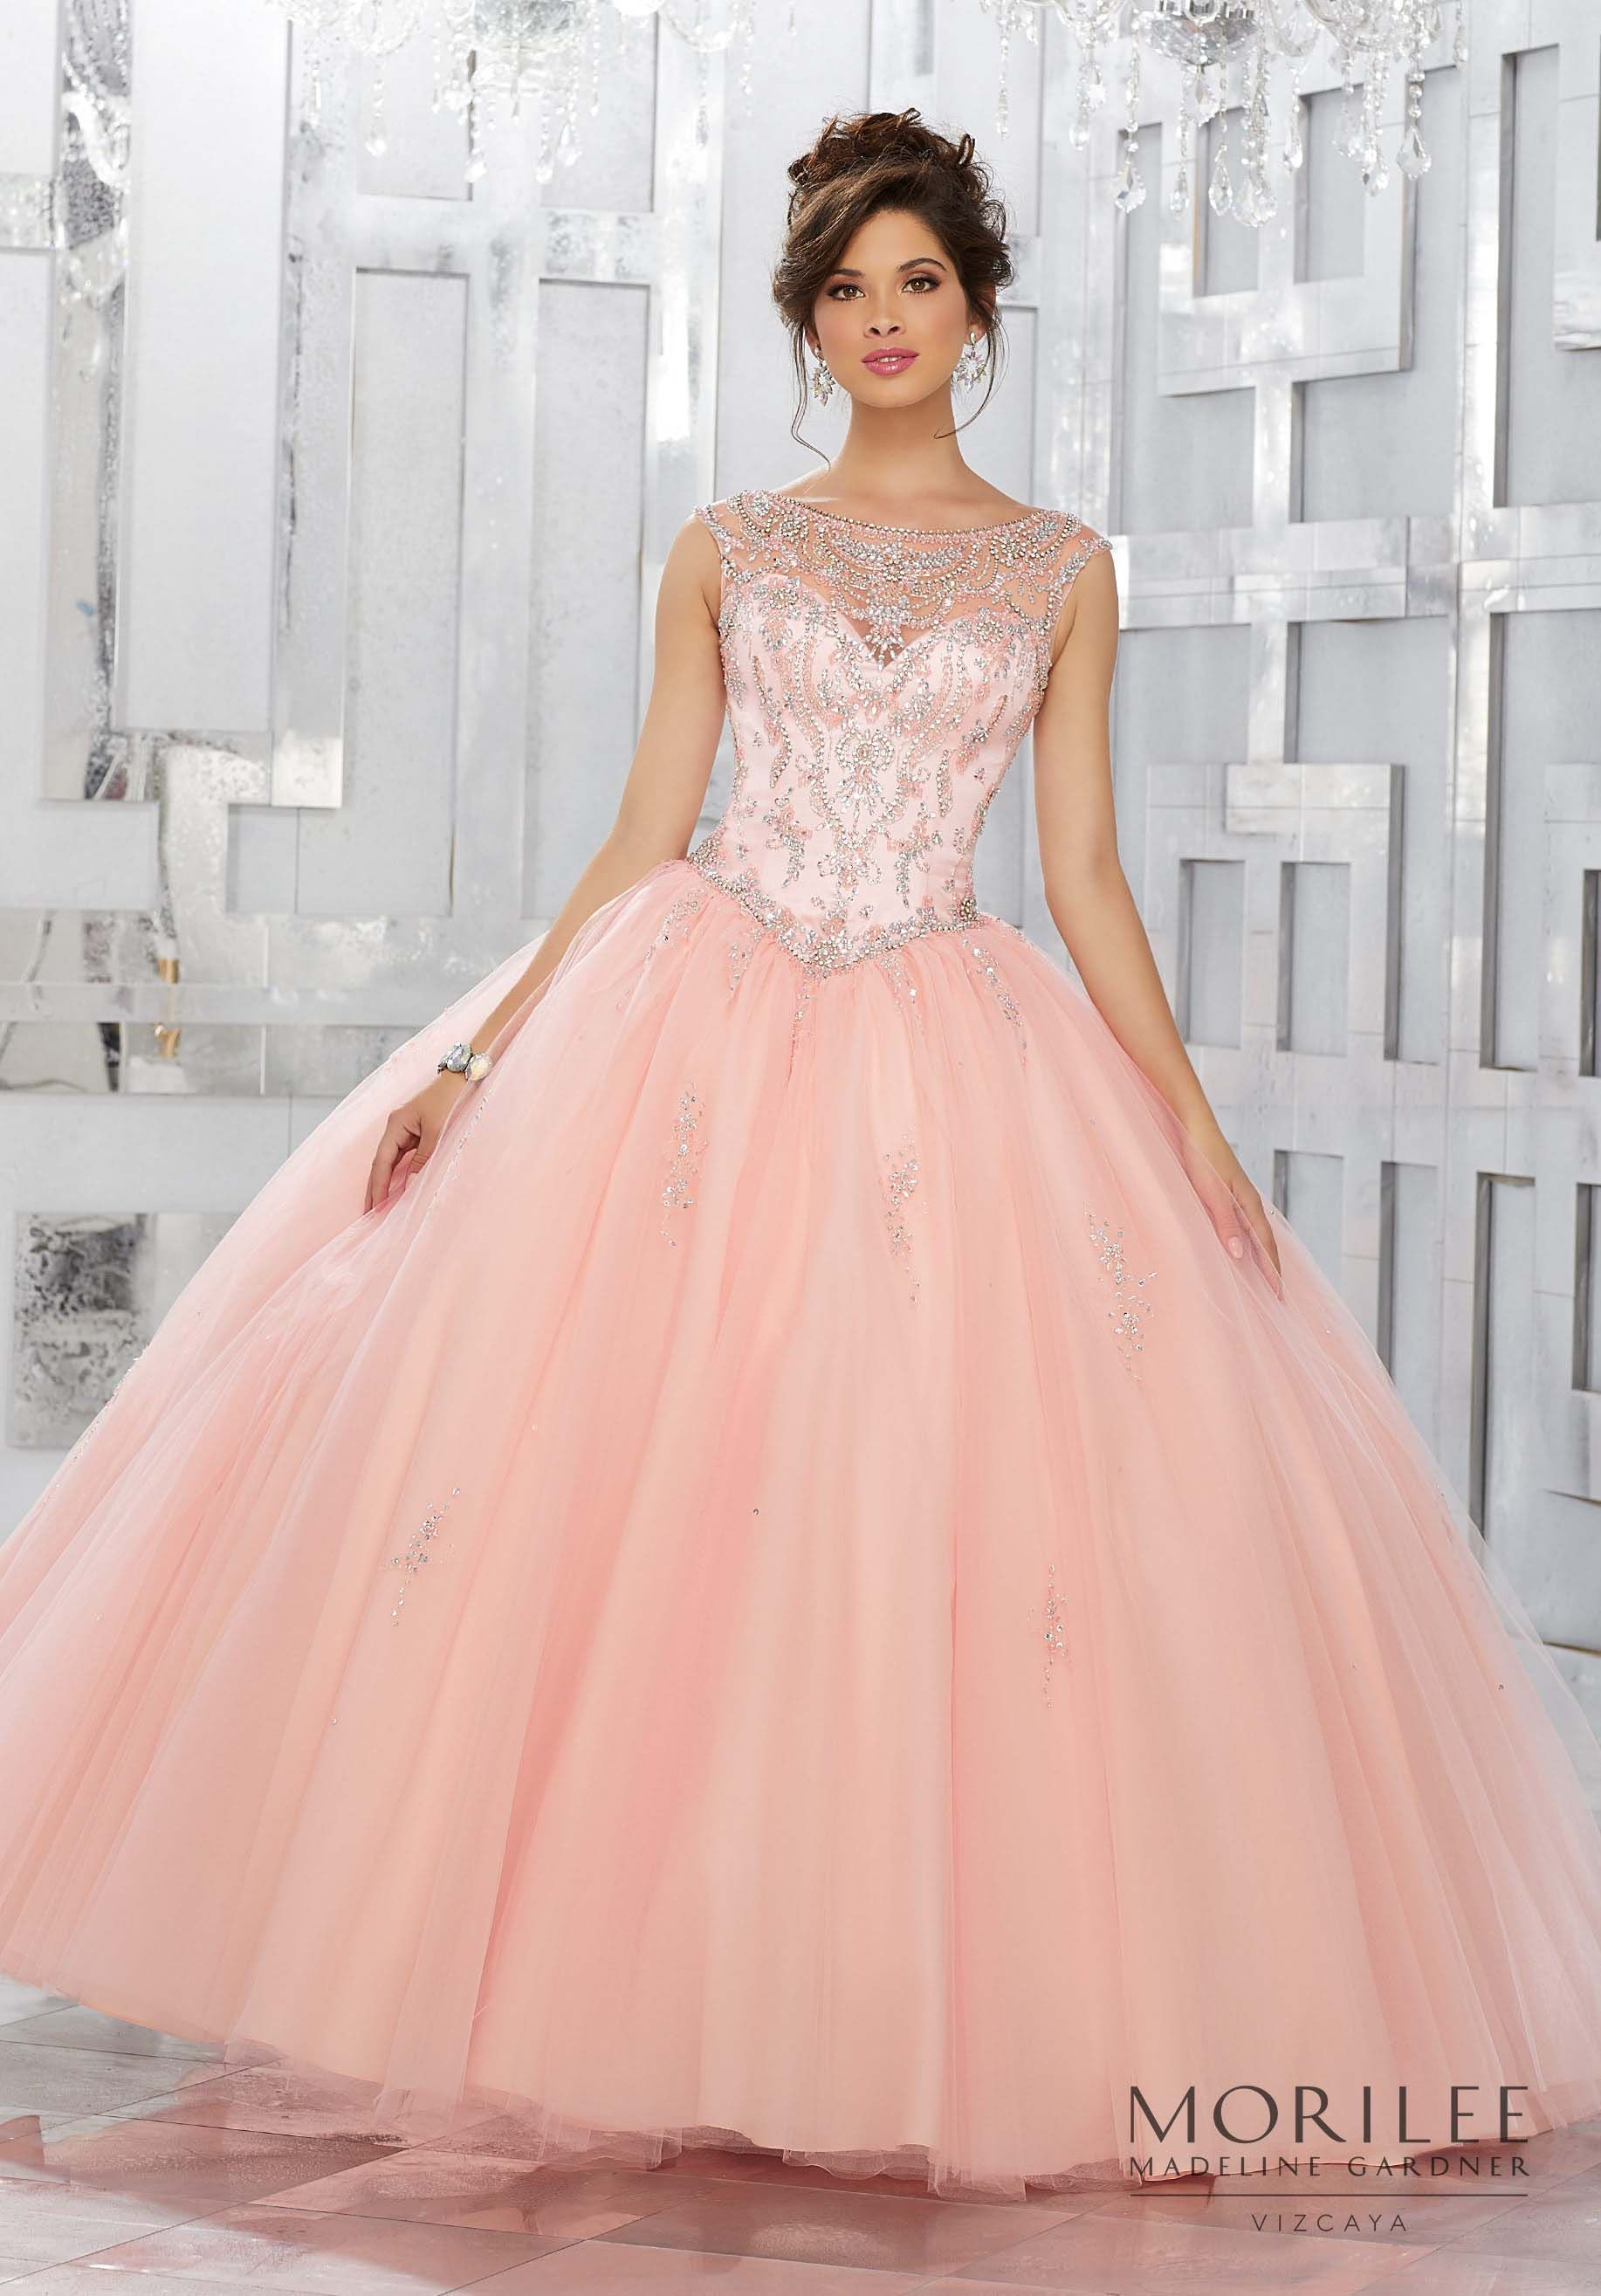 Blush this classic quinceañera ball gown perfectly combines a